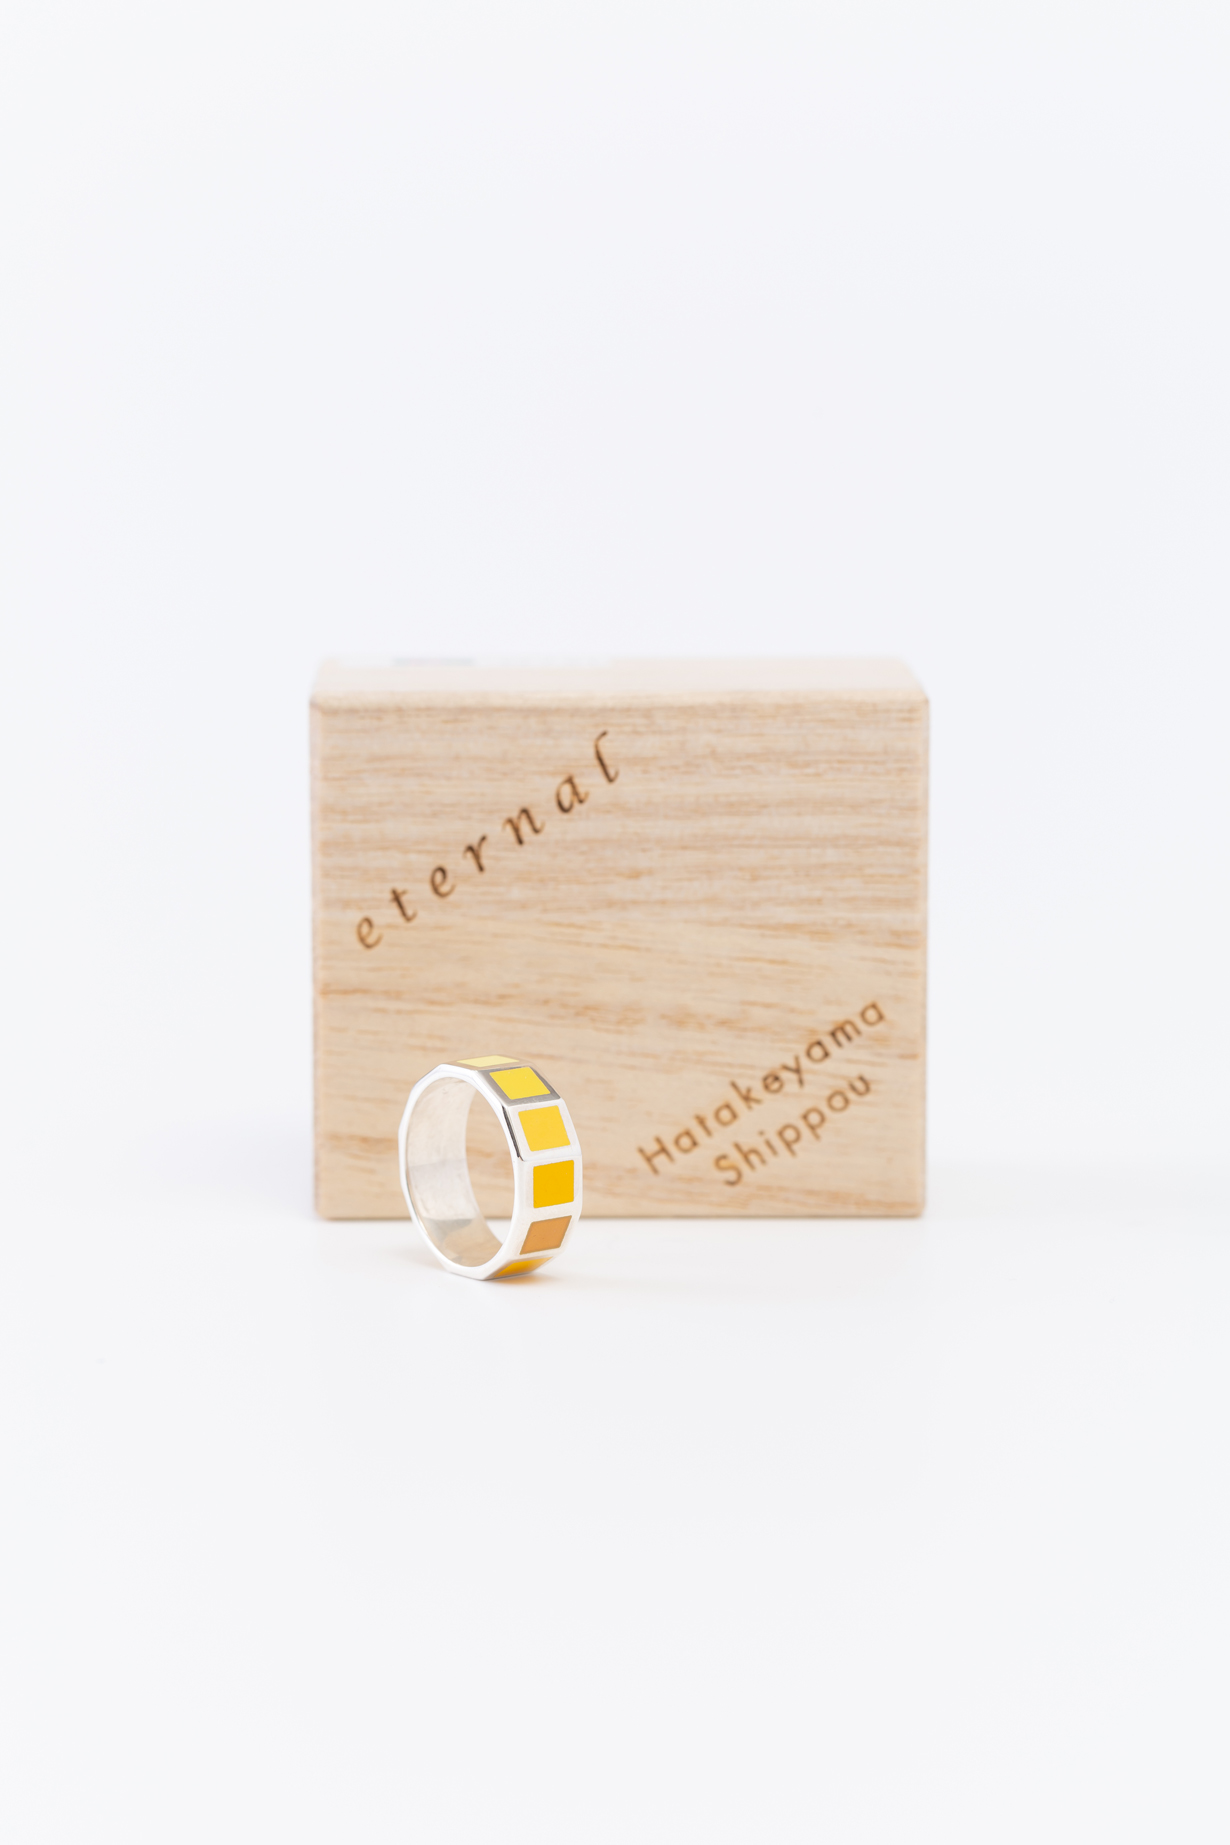 eternal(yellow)  W8mm